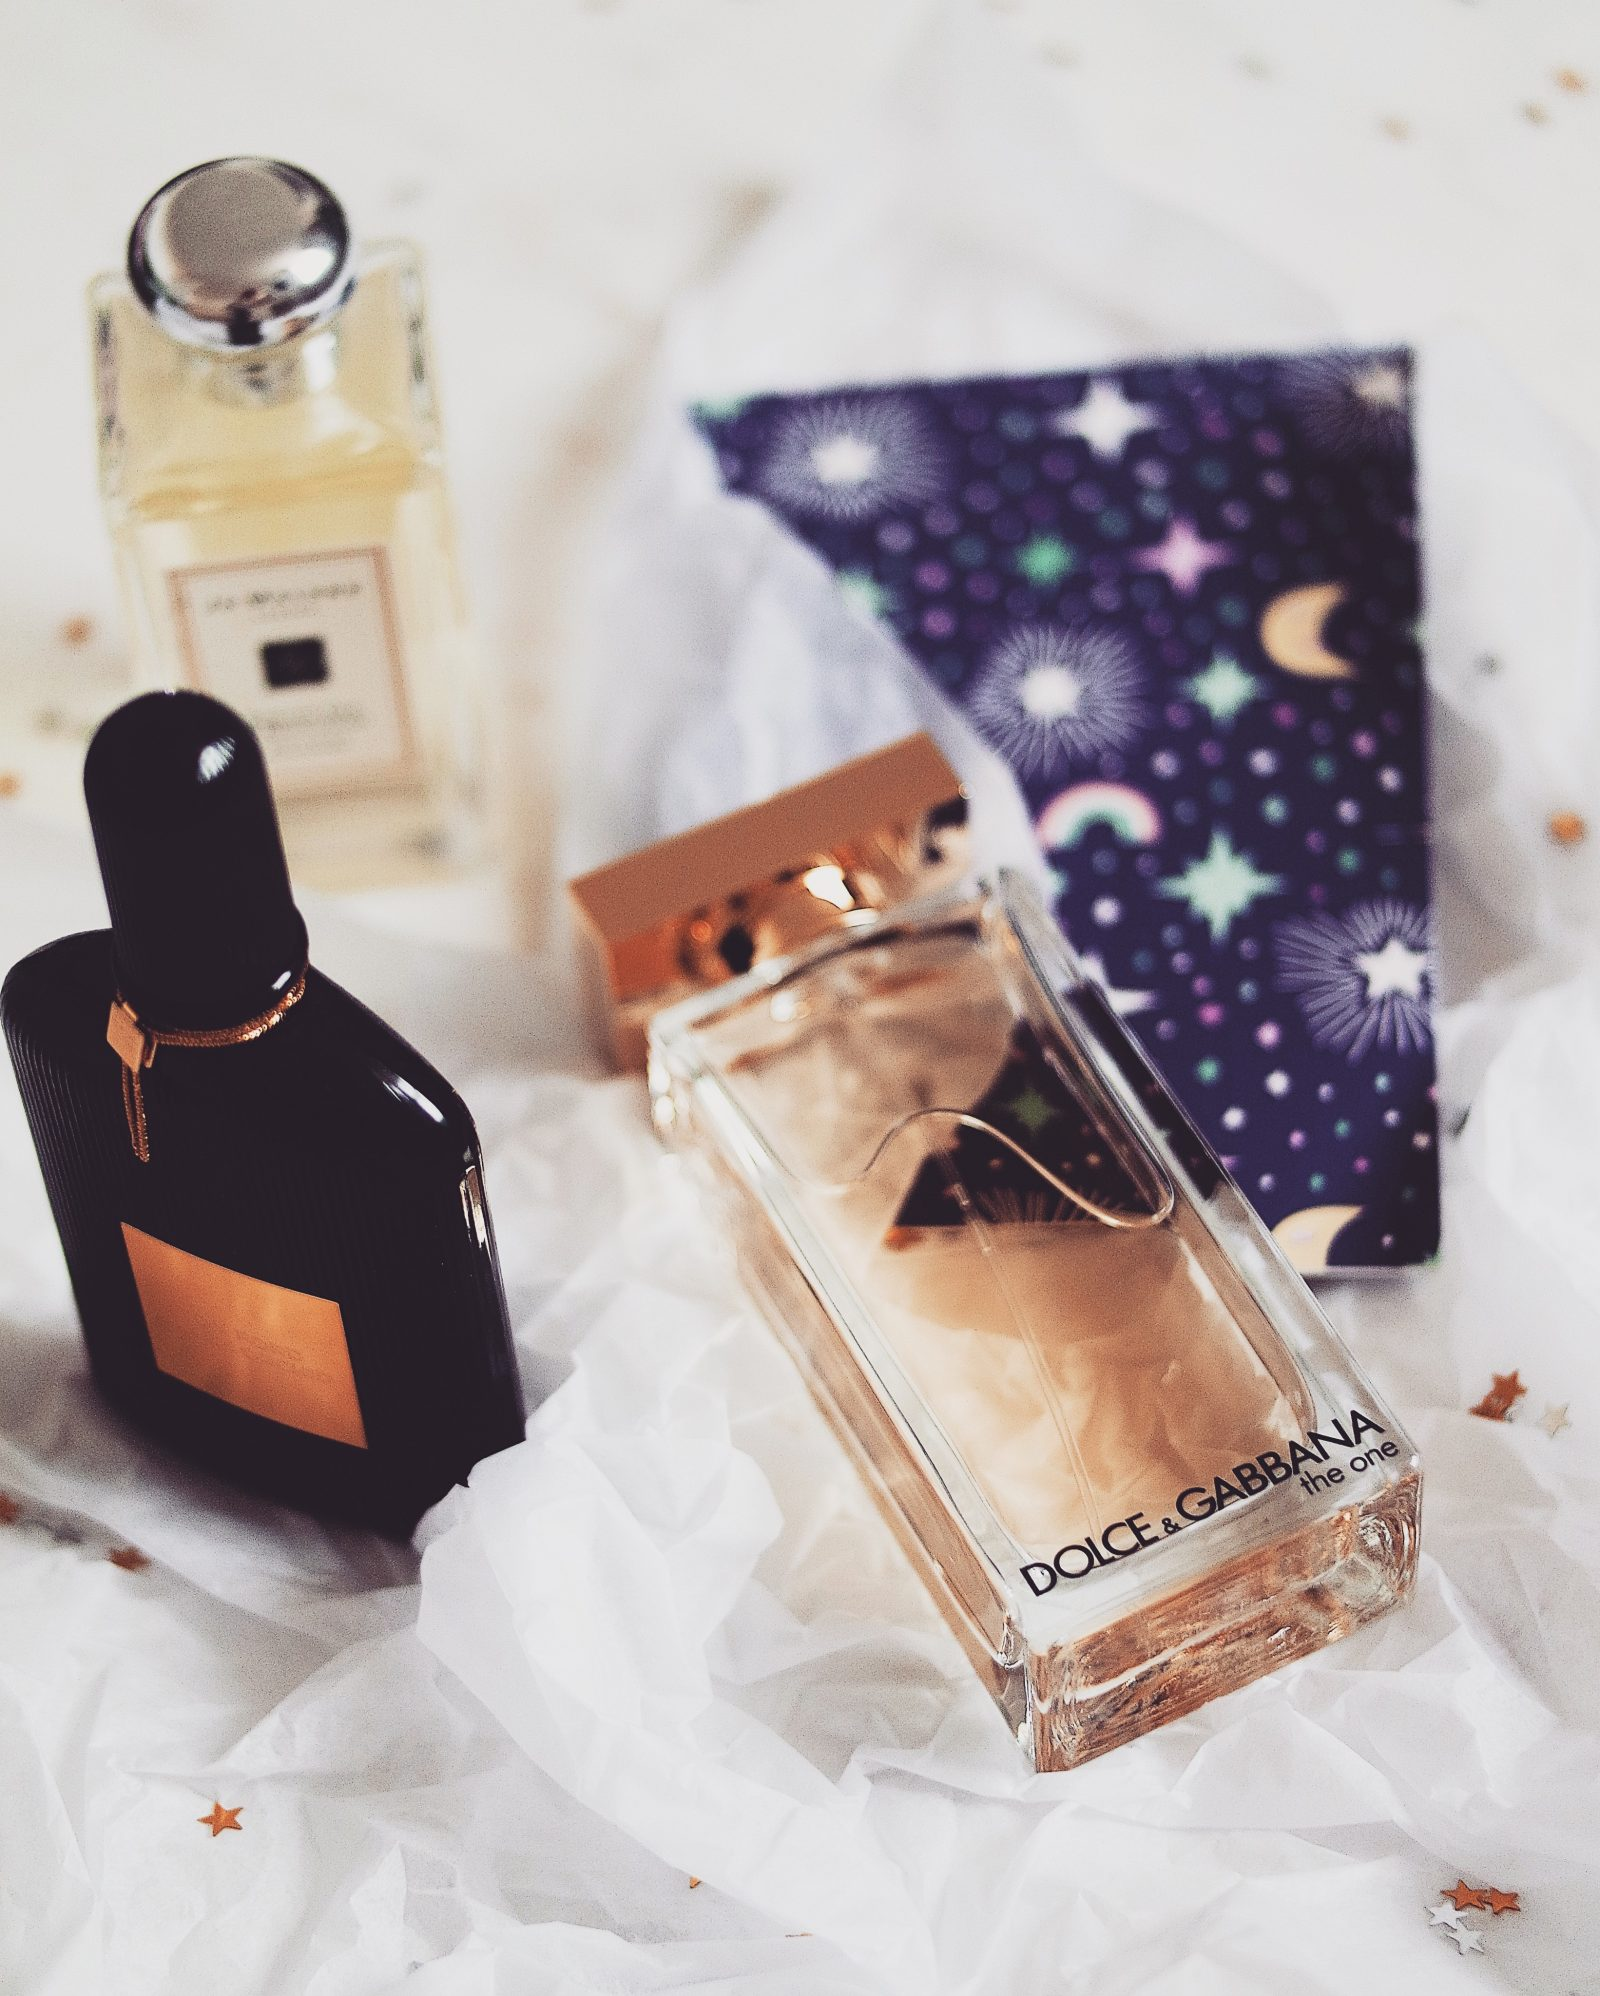 Gift guide for her - Perfume